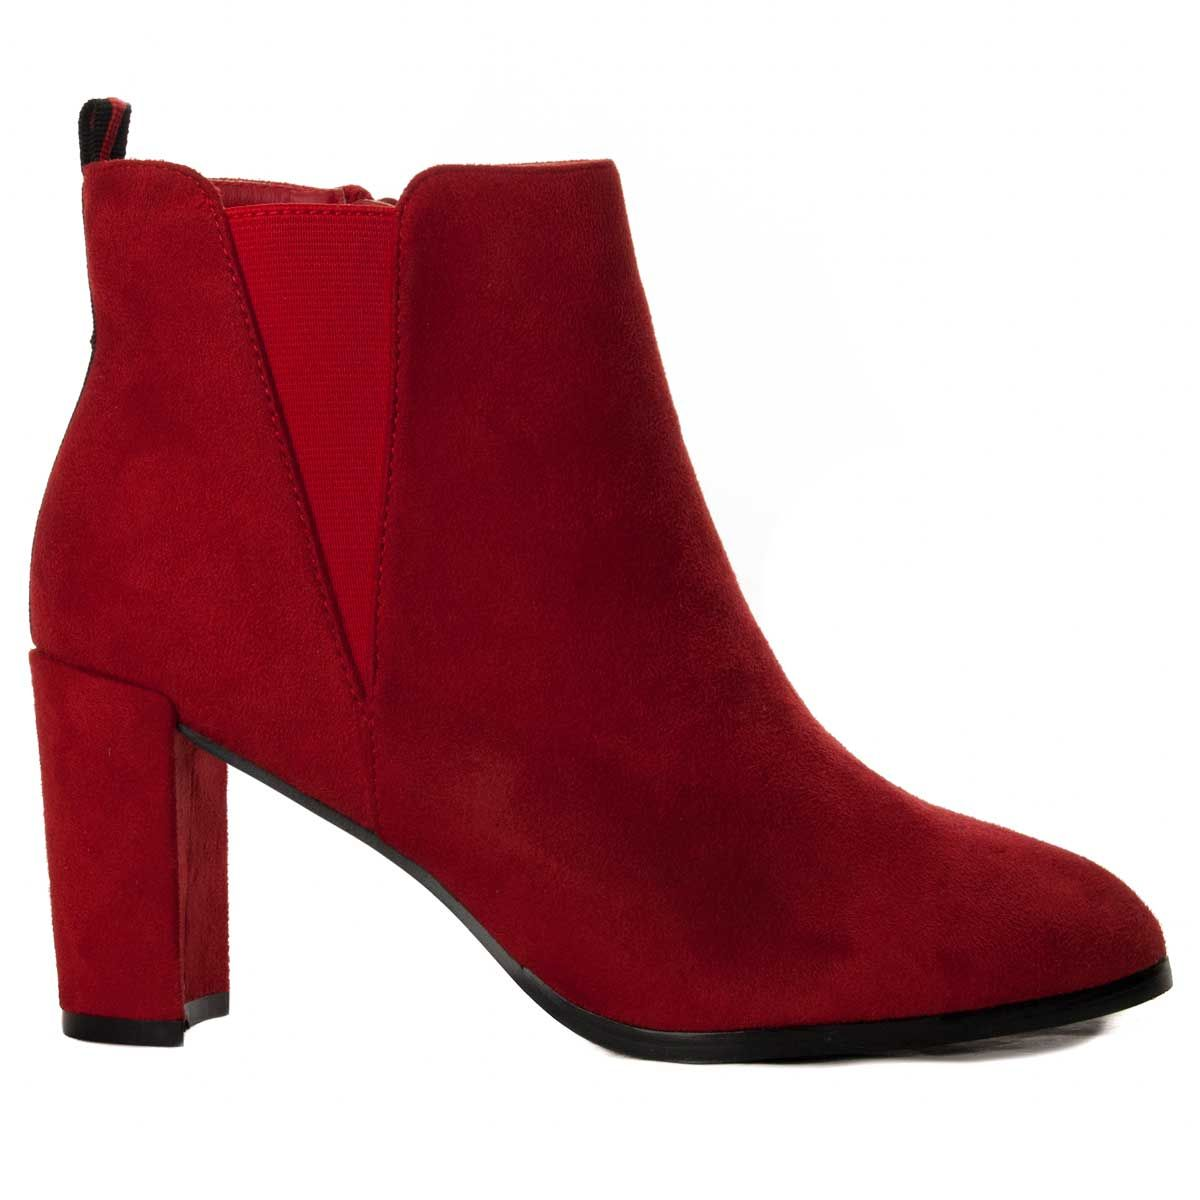 Montevita Heeled Ankle Boot in Red